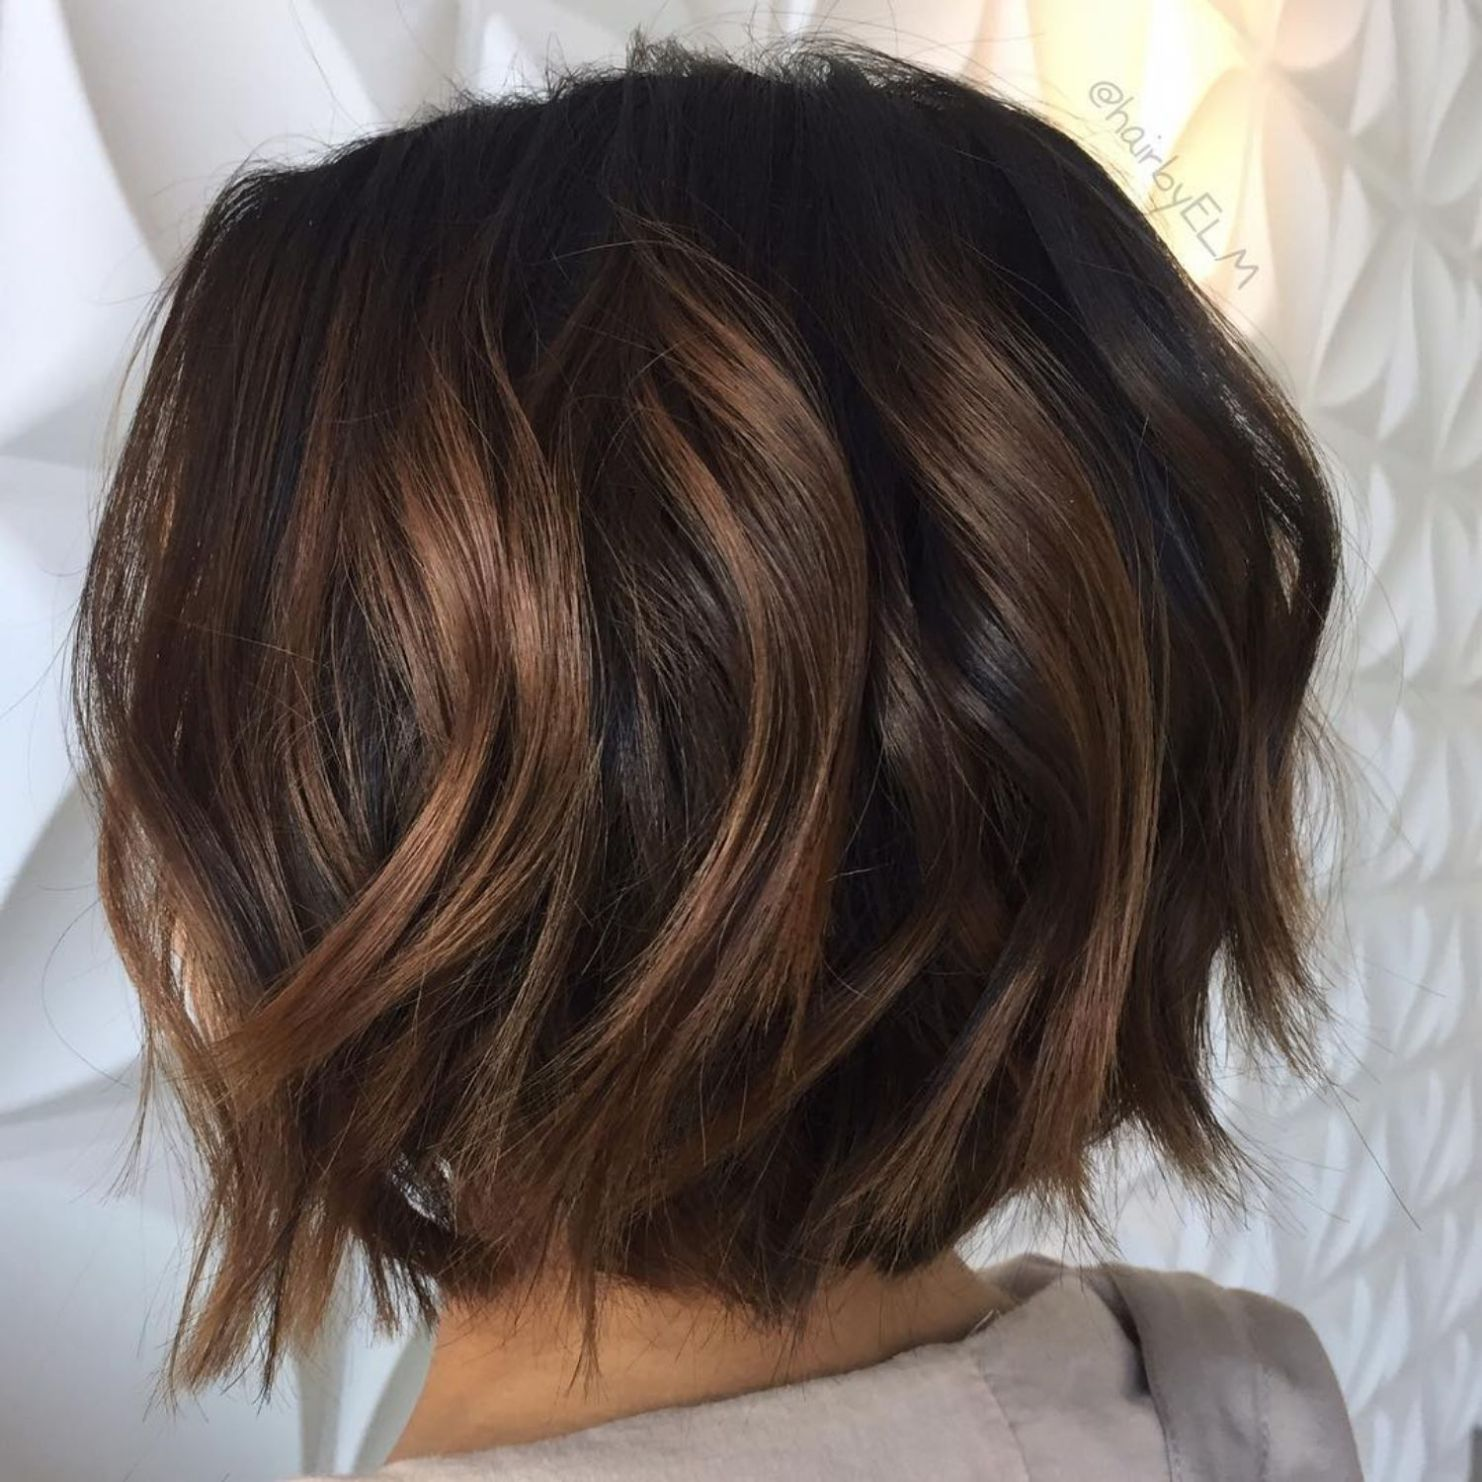 most beneficial haircuts for thick hair of any length hair